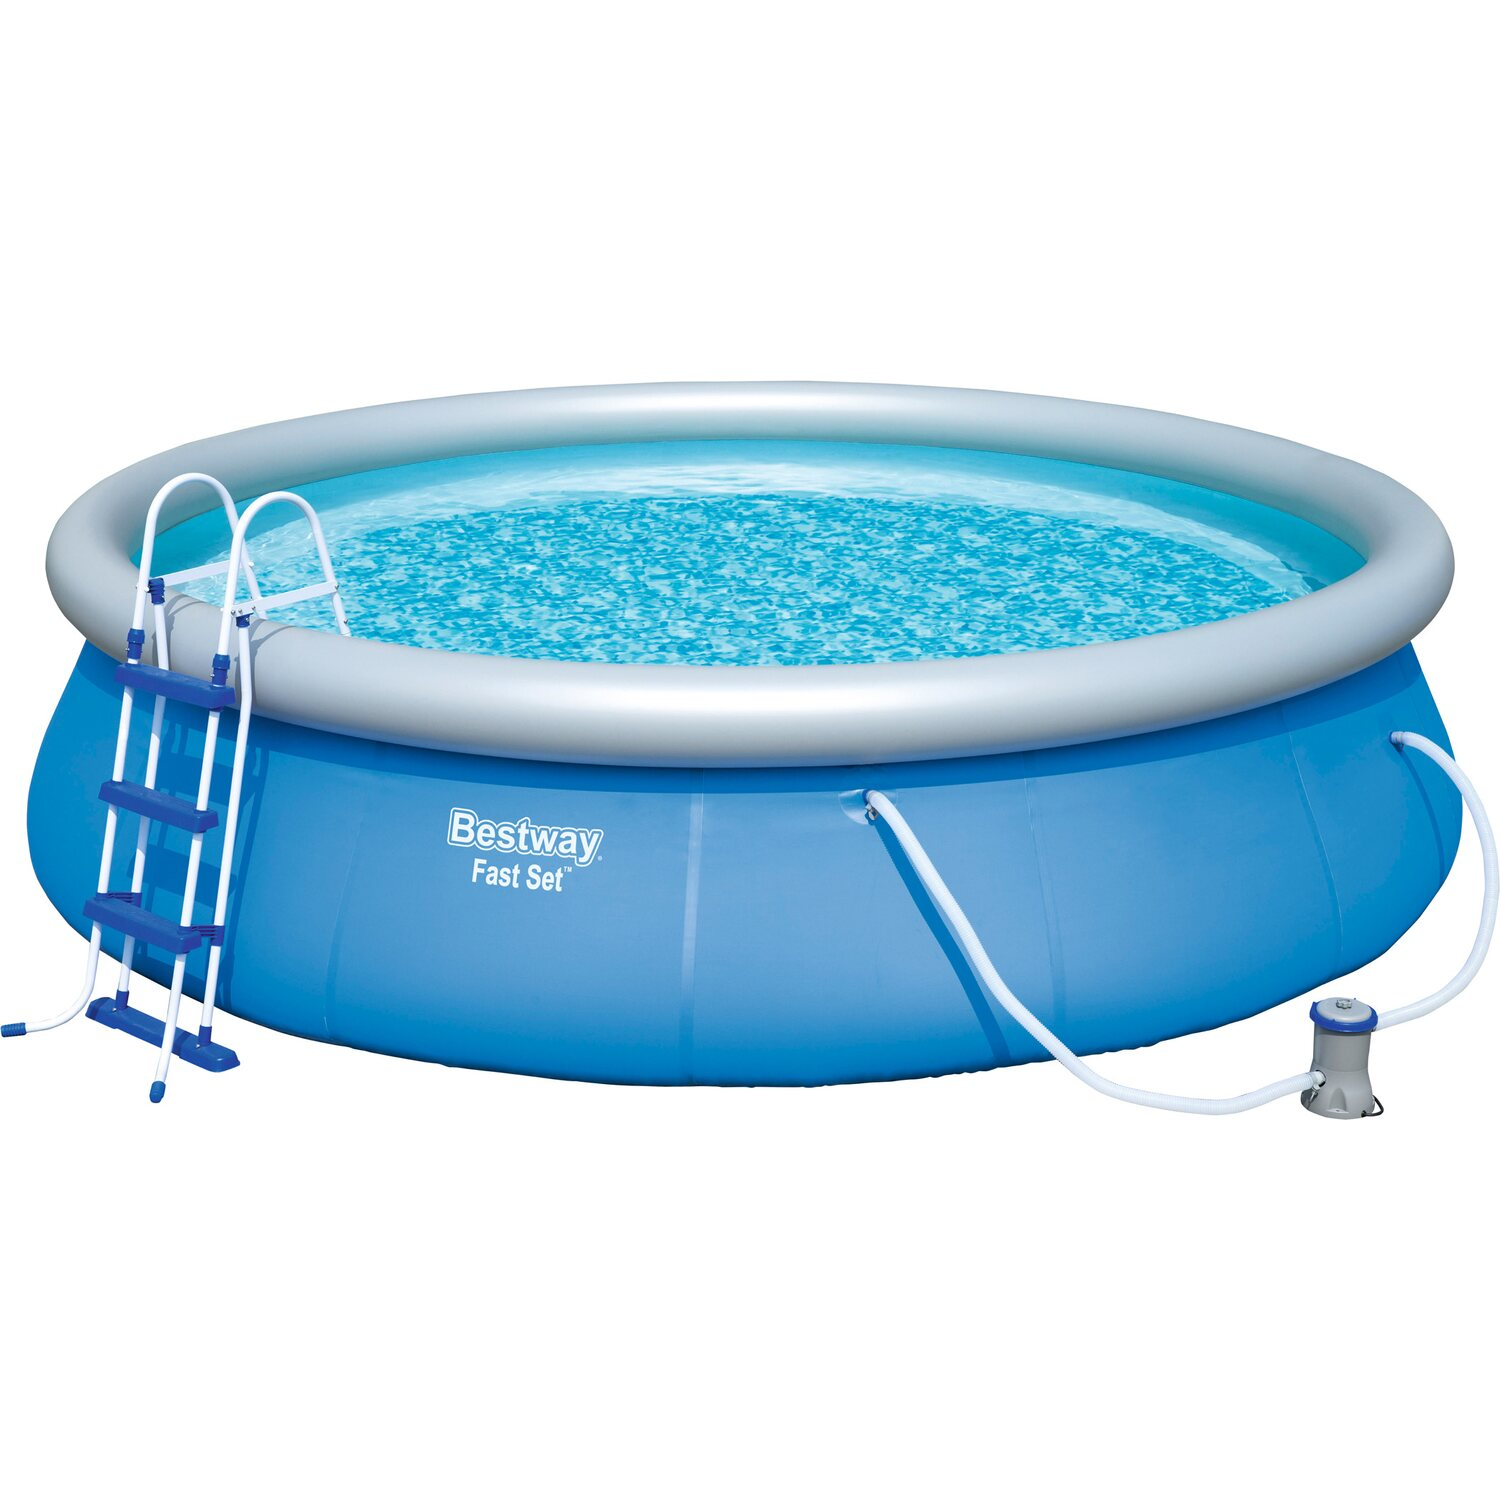 Bestway fast set pool kaufen bei obi for Badepool obi